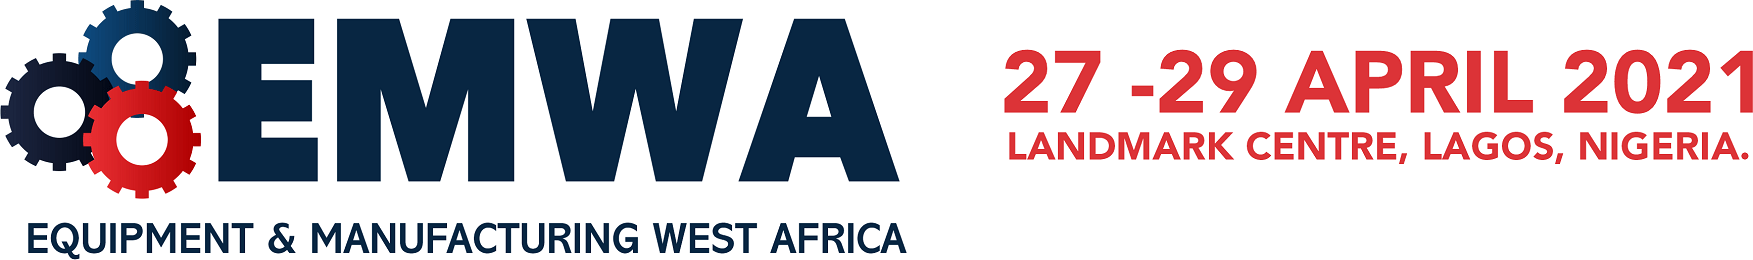 Equipment & Manufacturing West Africa